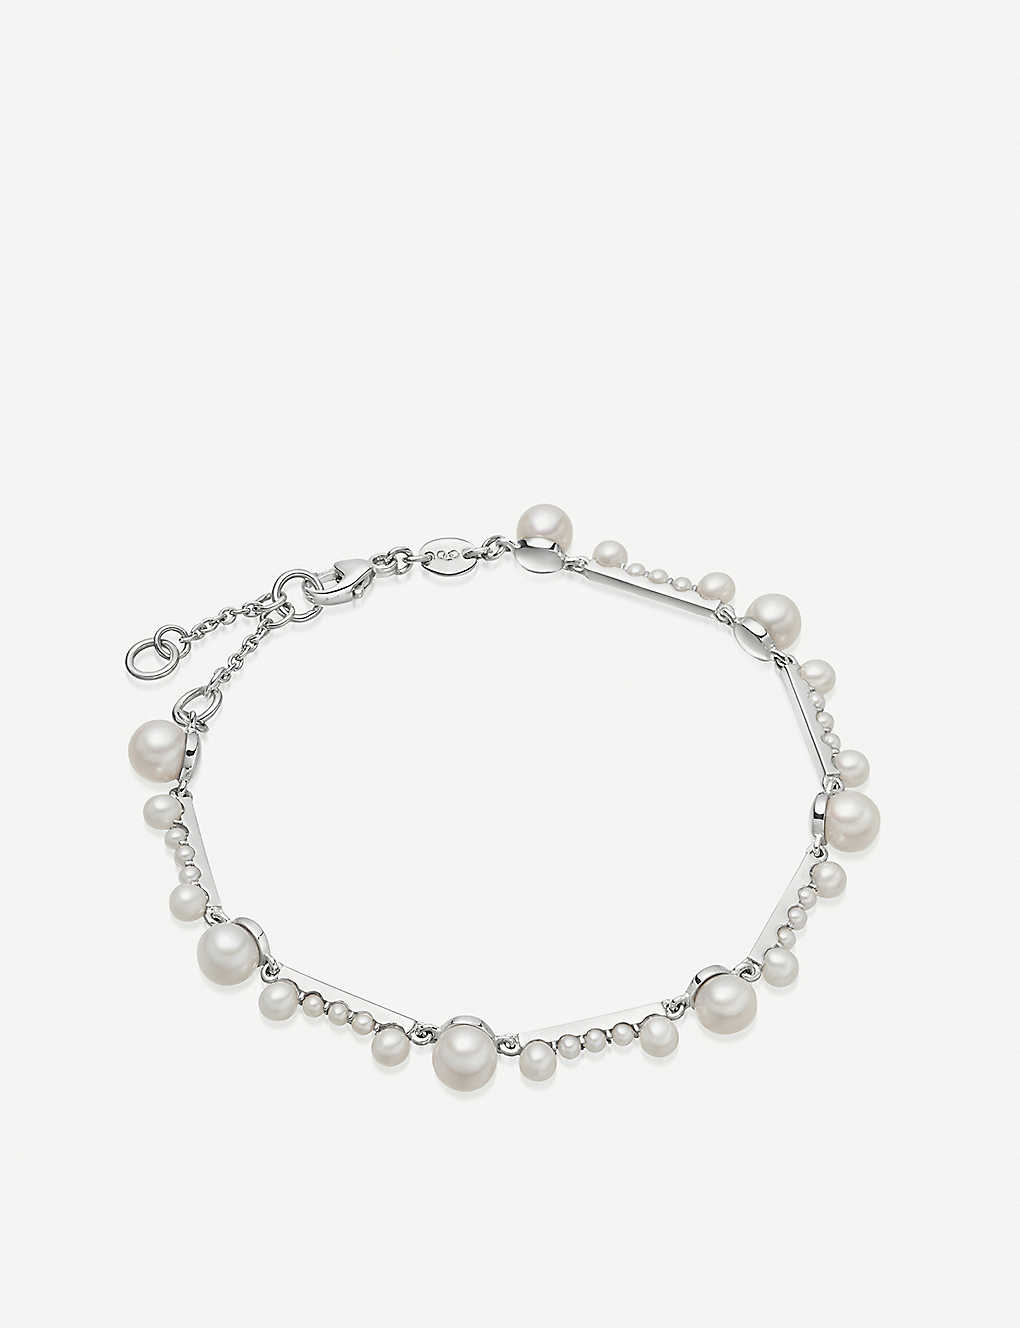 c99feee34f9ce8 LINKS OF LONDON - Orbs sterling silver and pearl bracelet ...